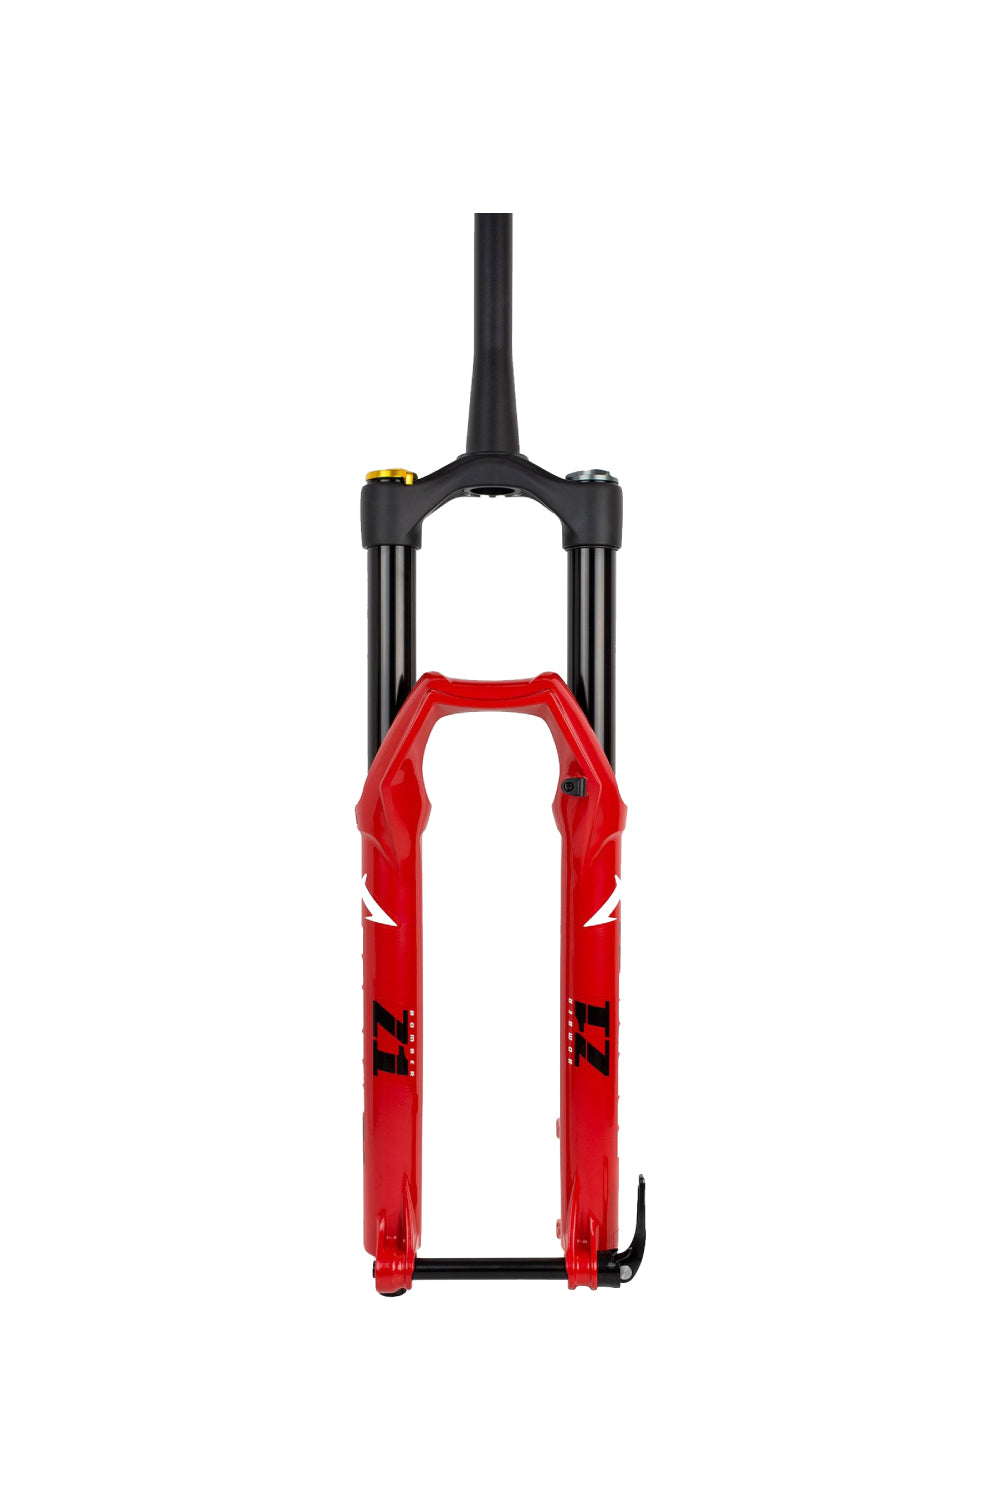 "Marzocchi Bomber Z1 29"" Fork 170mm Travel Gloss Red"